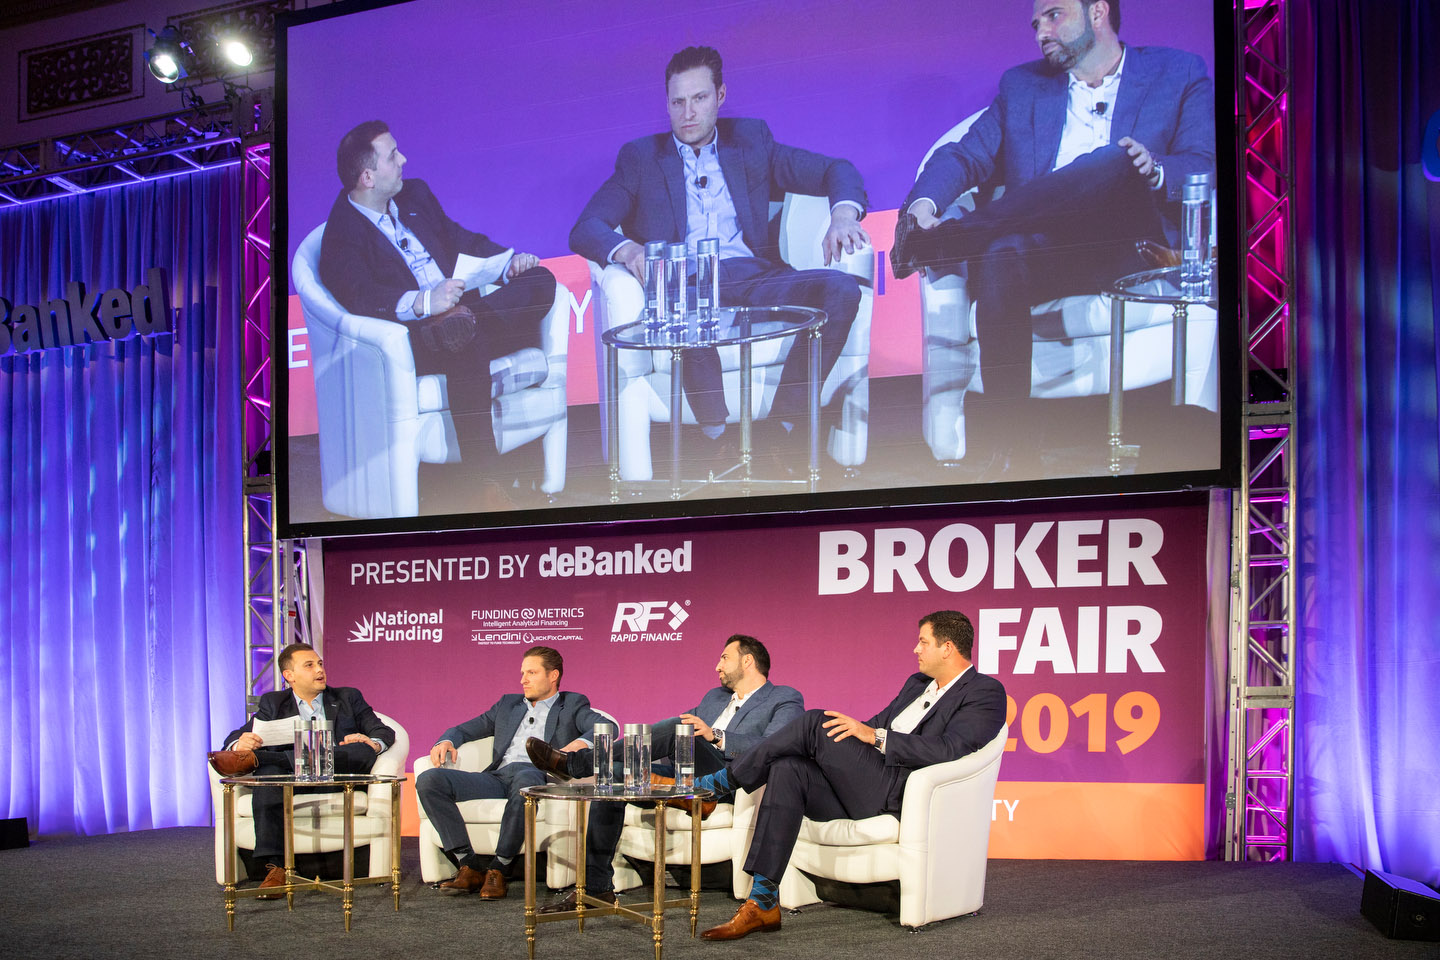 Broker Fair 2019 - Presented by deBanked - 240